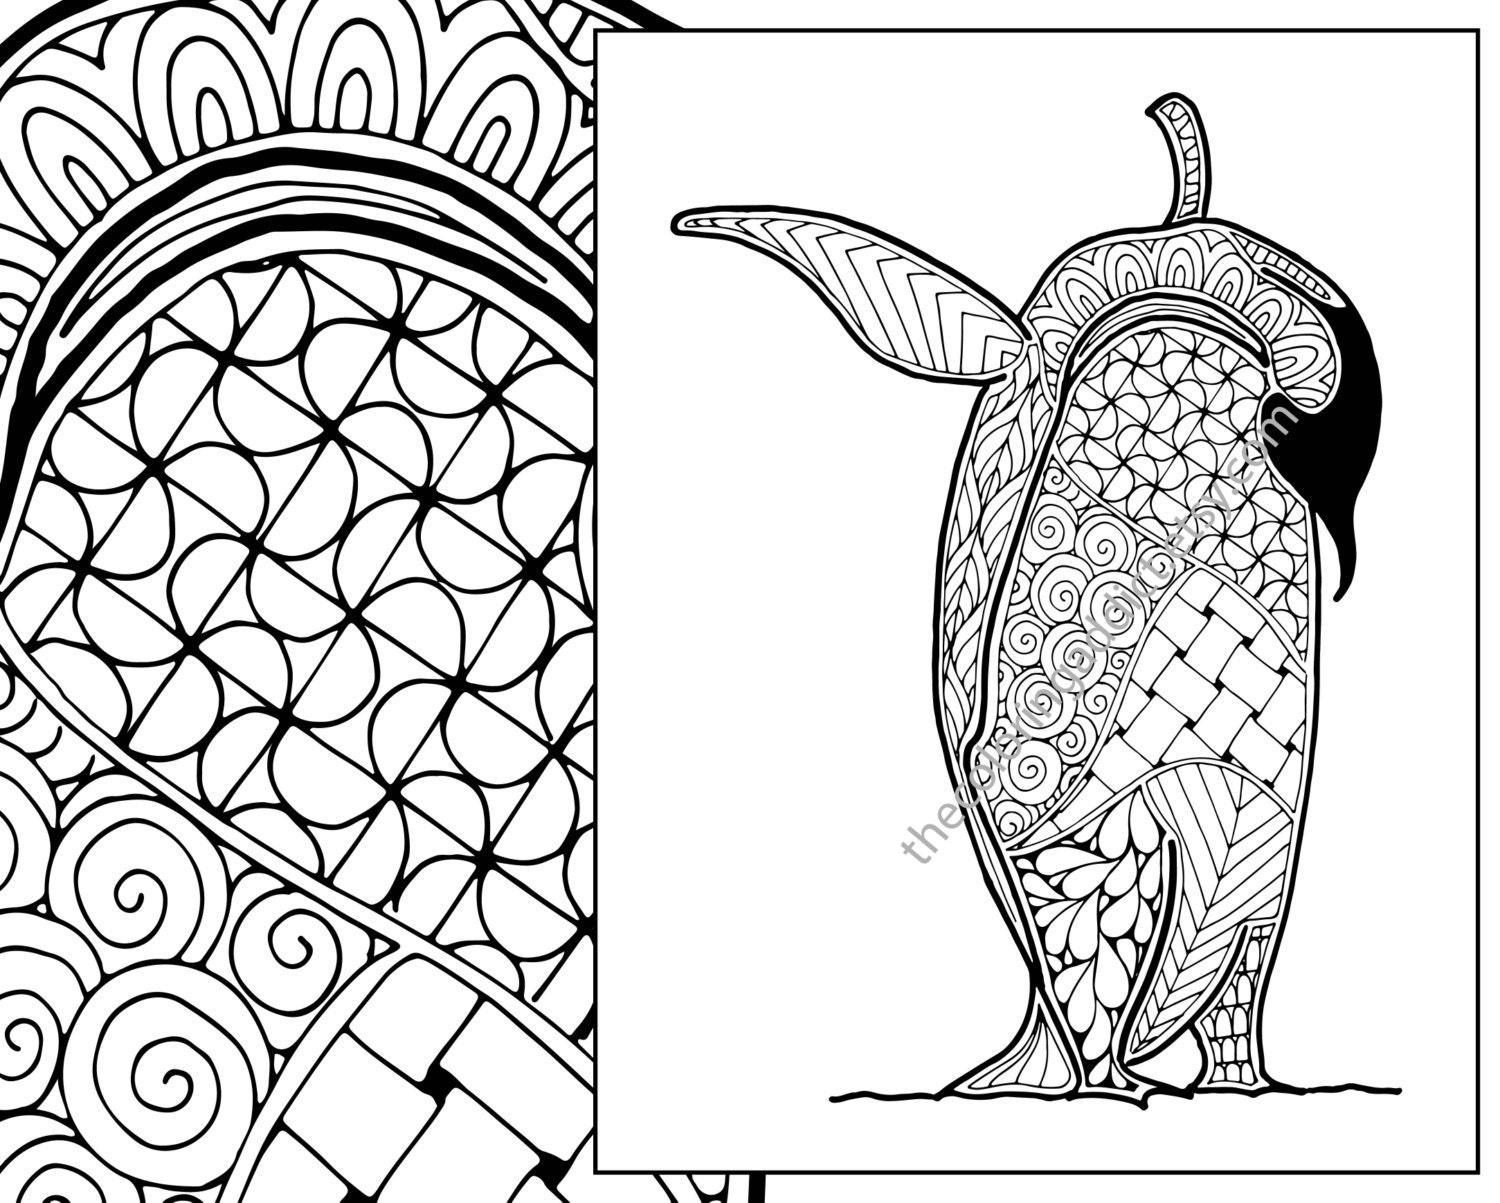 penguin coloring sheet animal coloring pdf zentangle